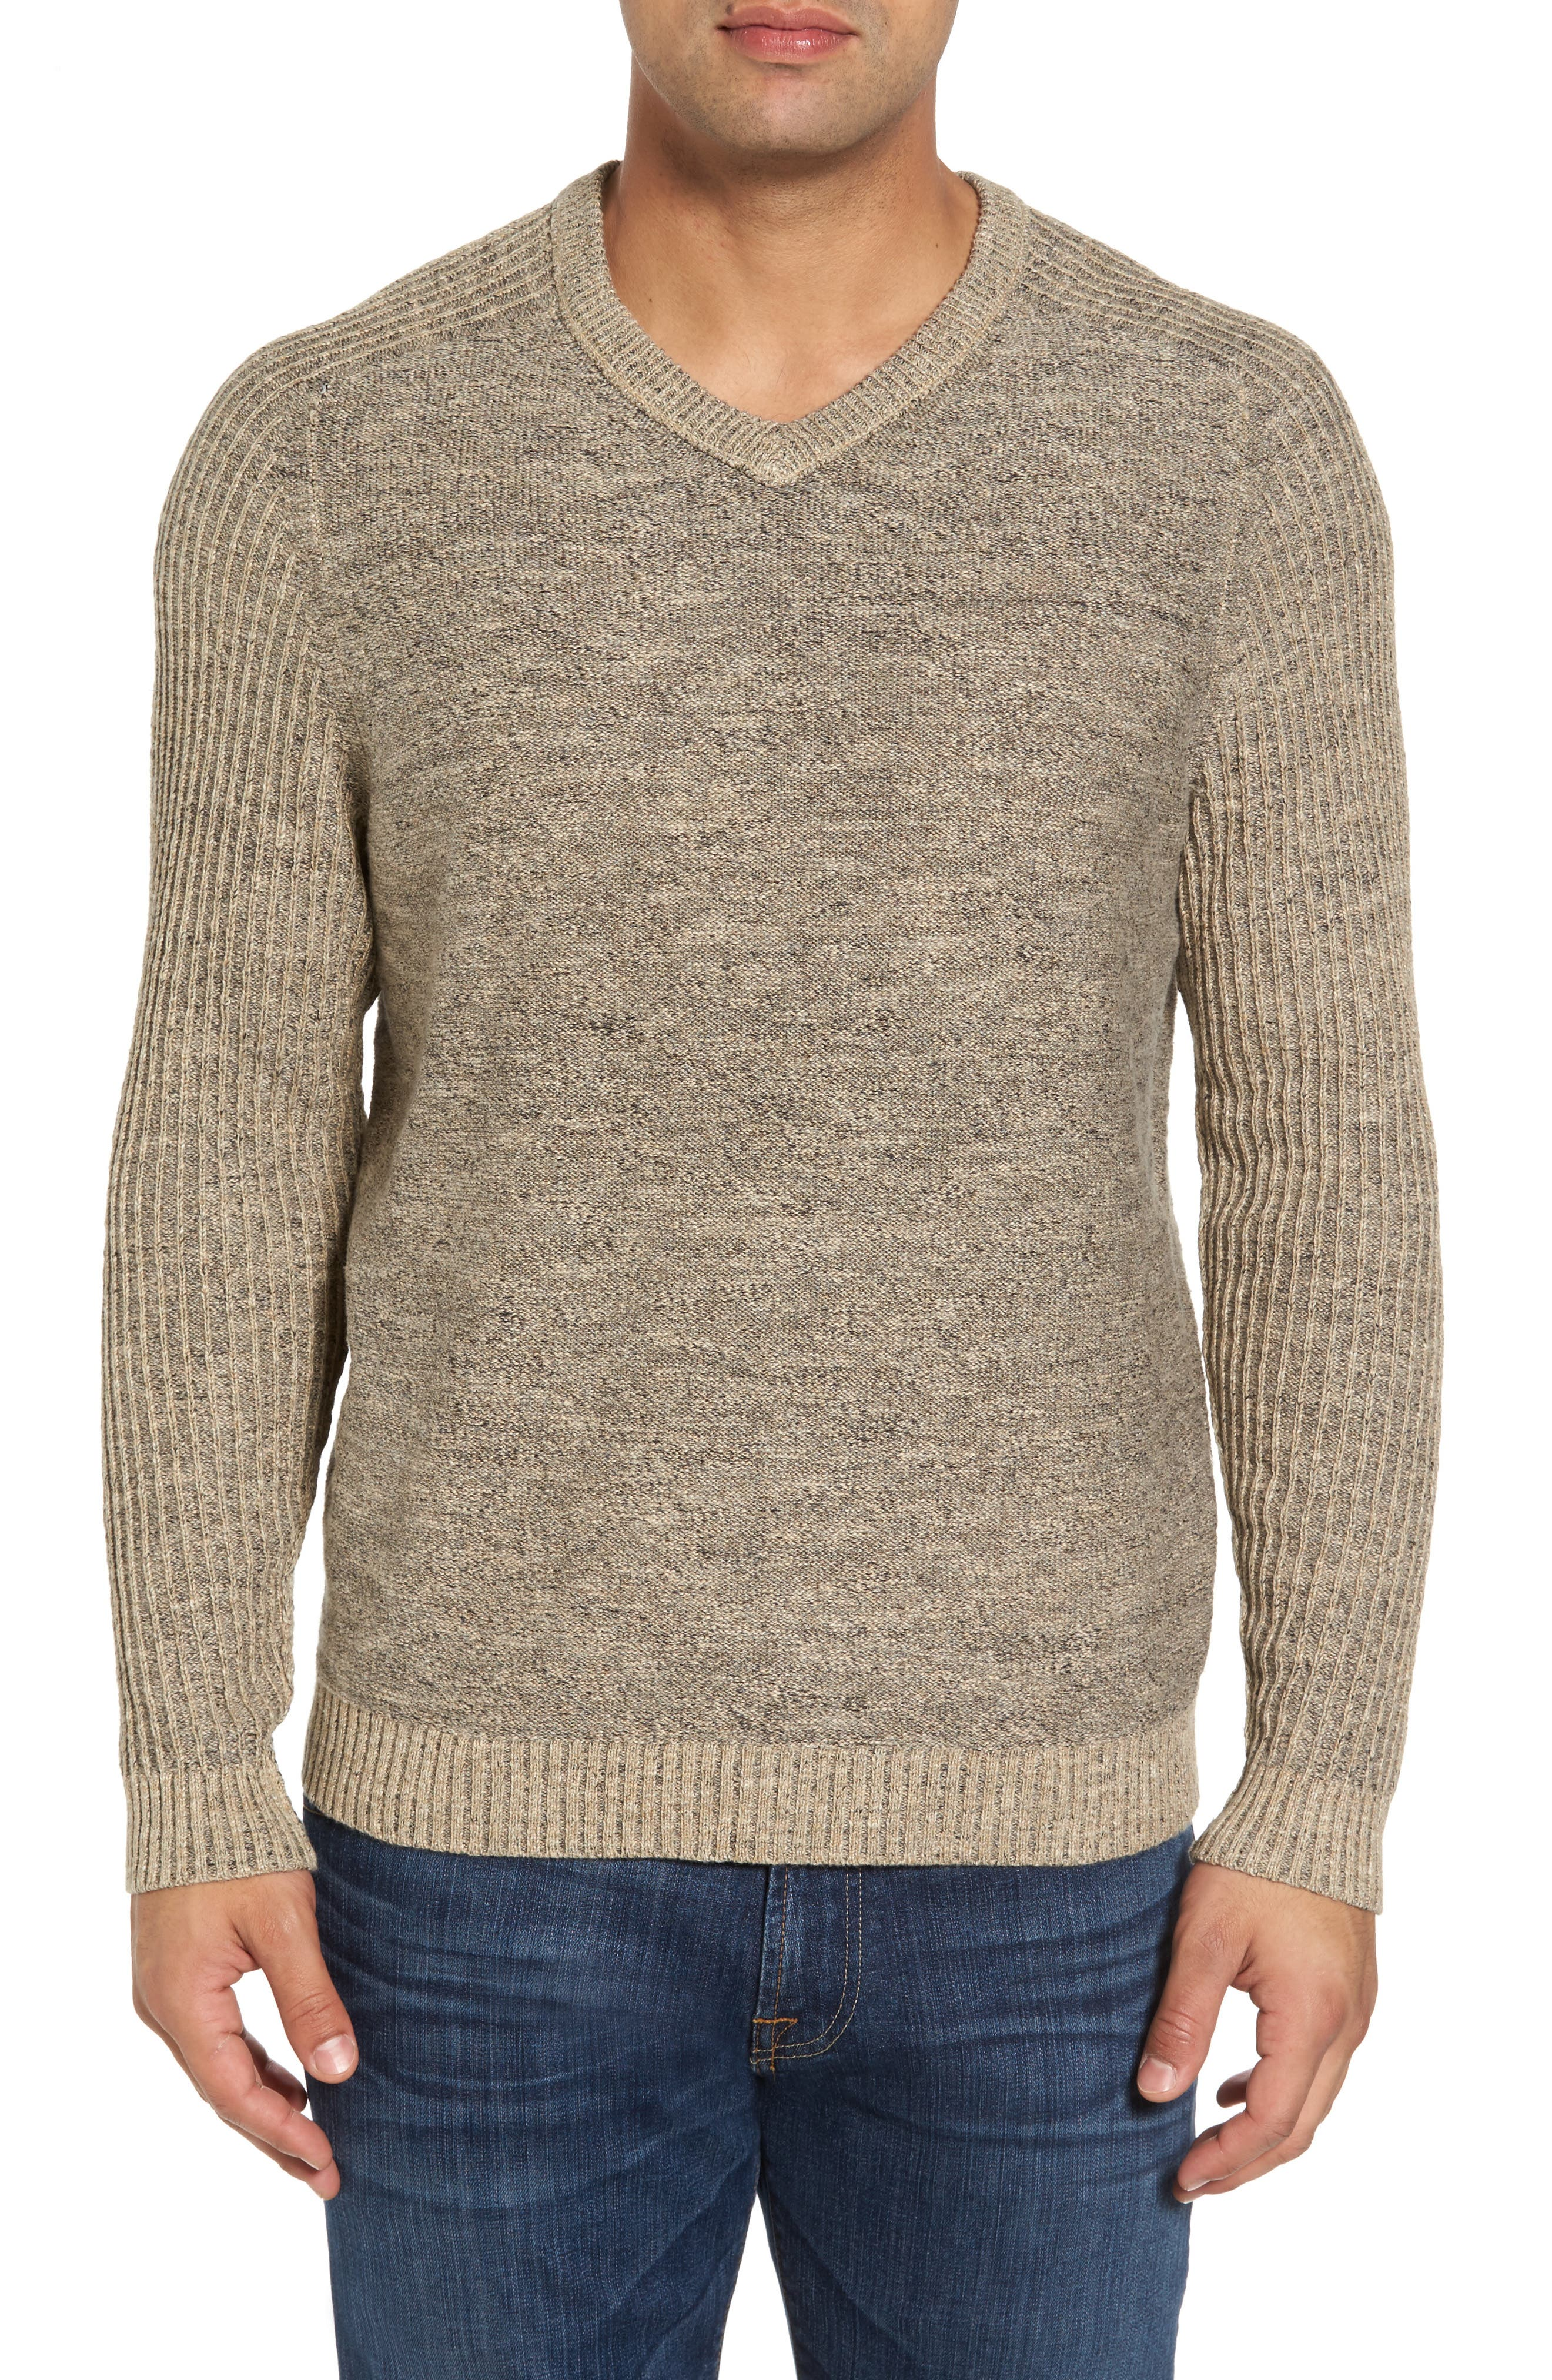 Gran Rey Flip Reversible Cotton & Wool Sweater,                             Alternate thumbnail 8, color,